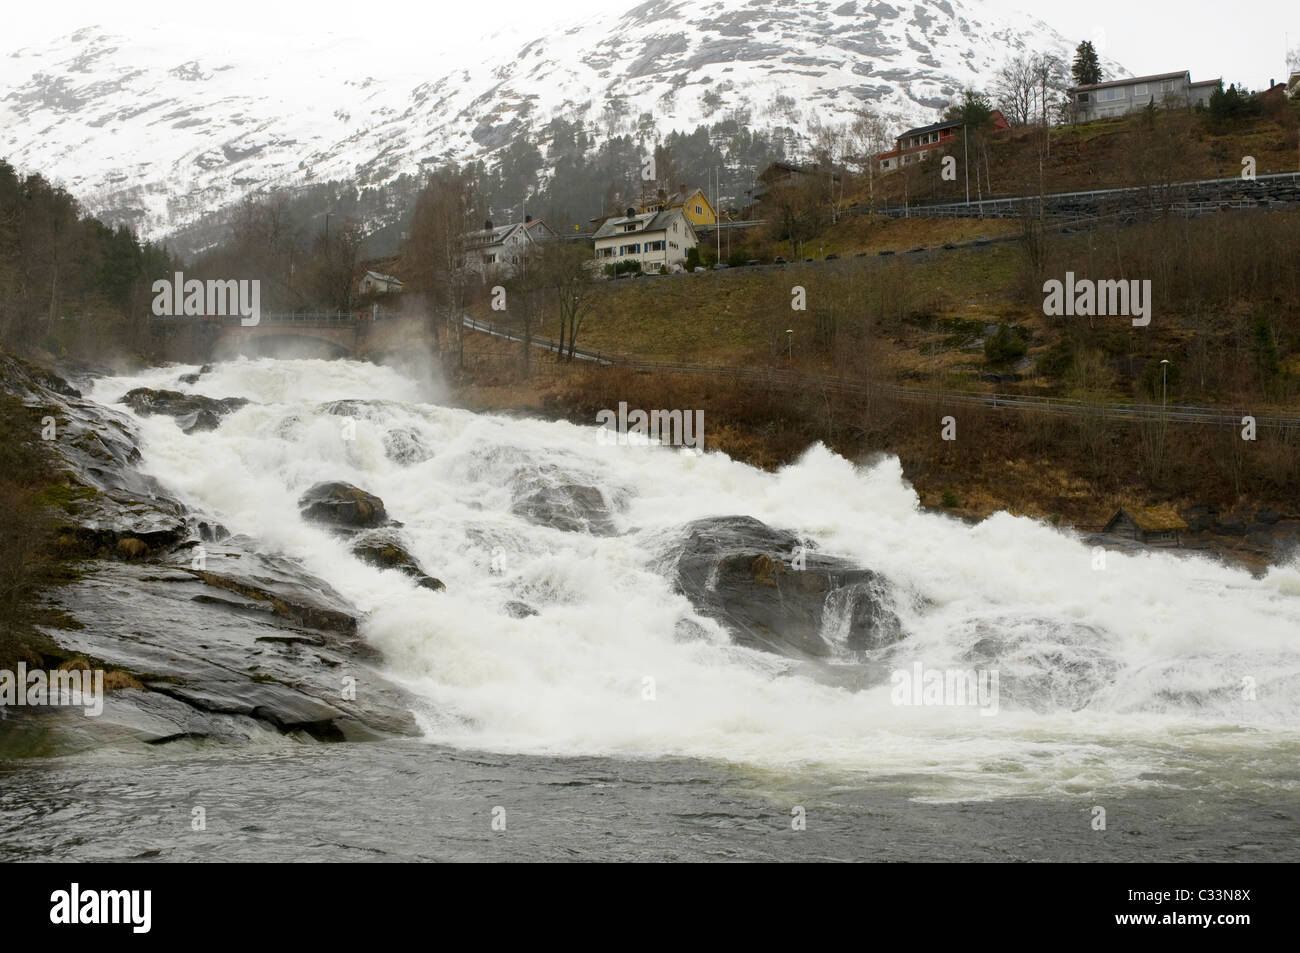 meltwater cascading through the waterfall at Hellesylt on the Geiranger fjord, Norway - Stock Image